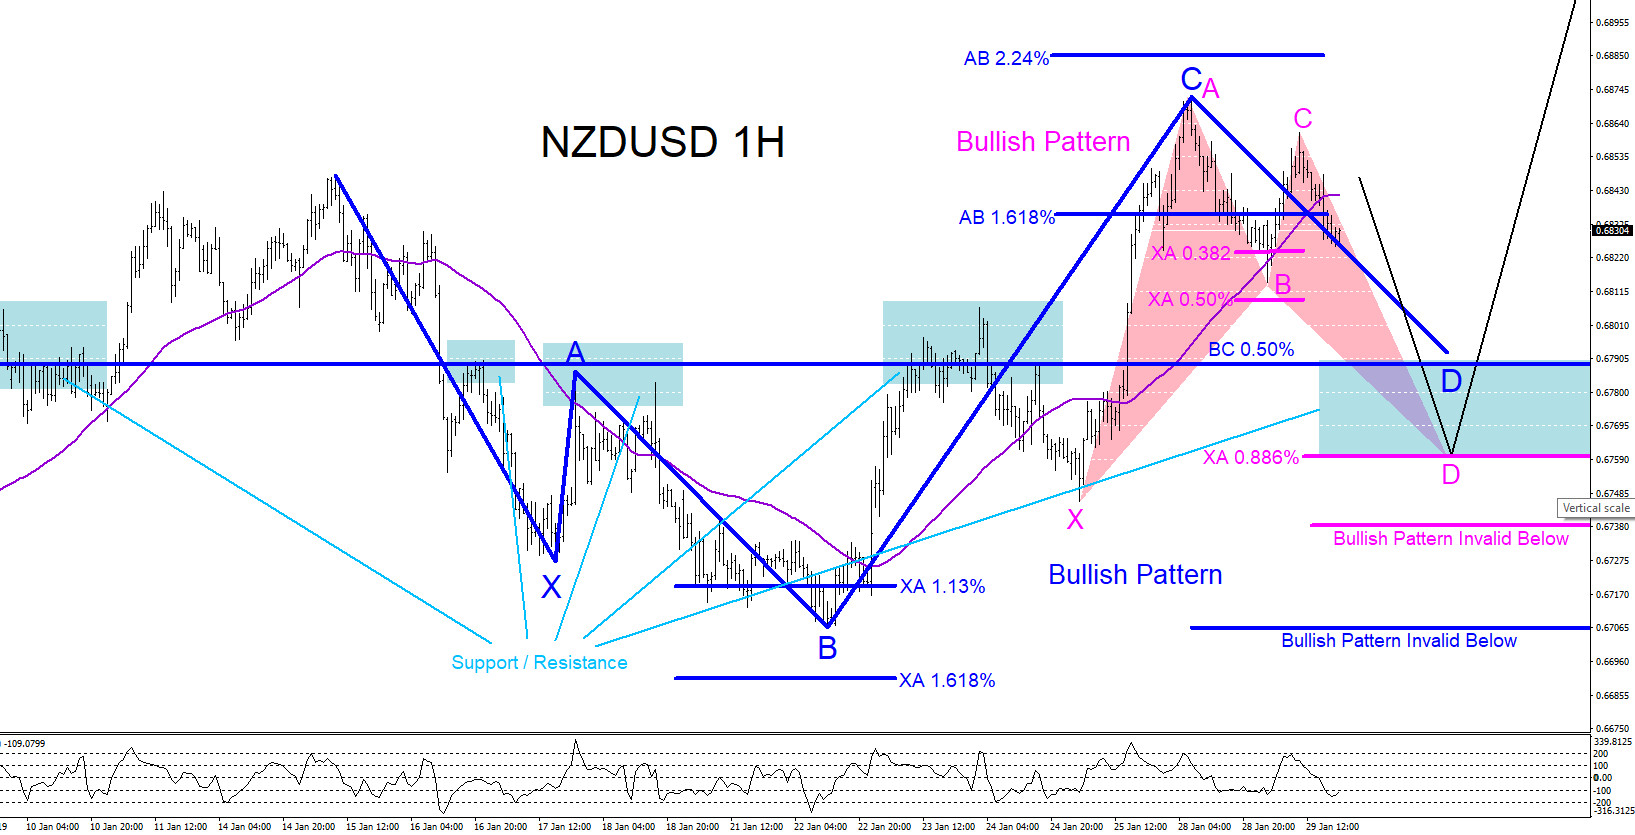 NZDUSD, forex, technical analysis, elliottwave, elliott wave, bullish, patterns